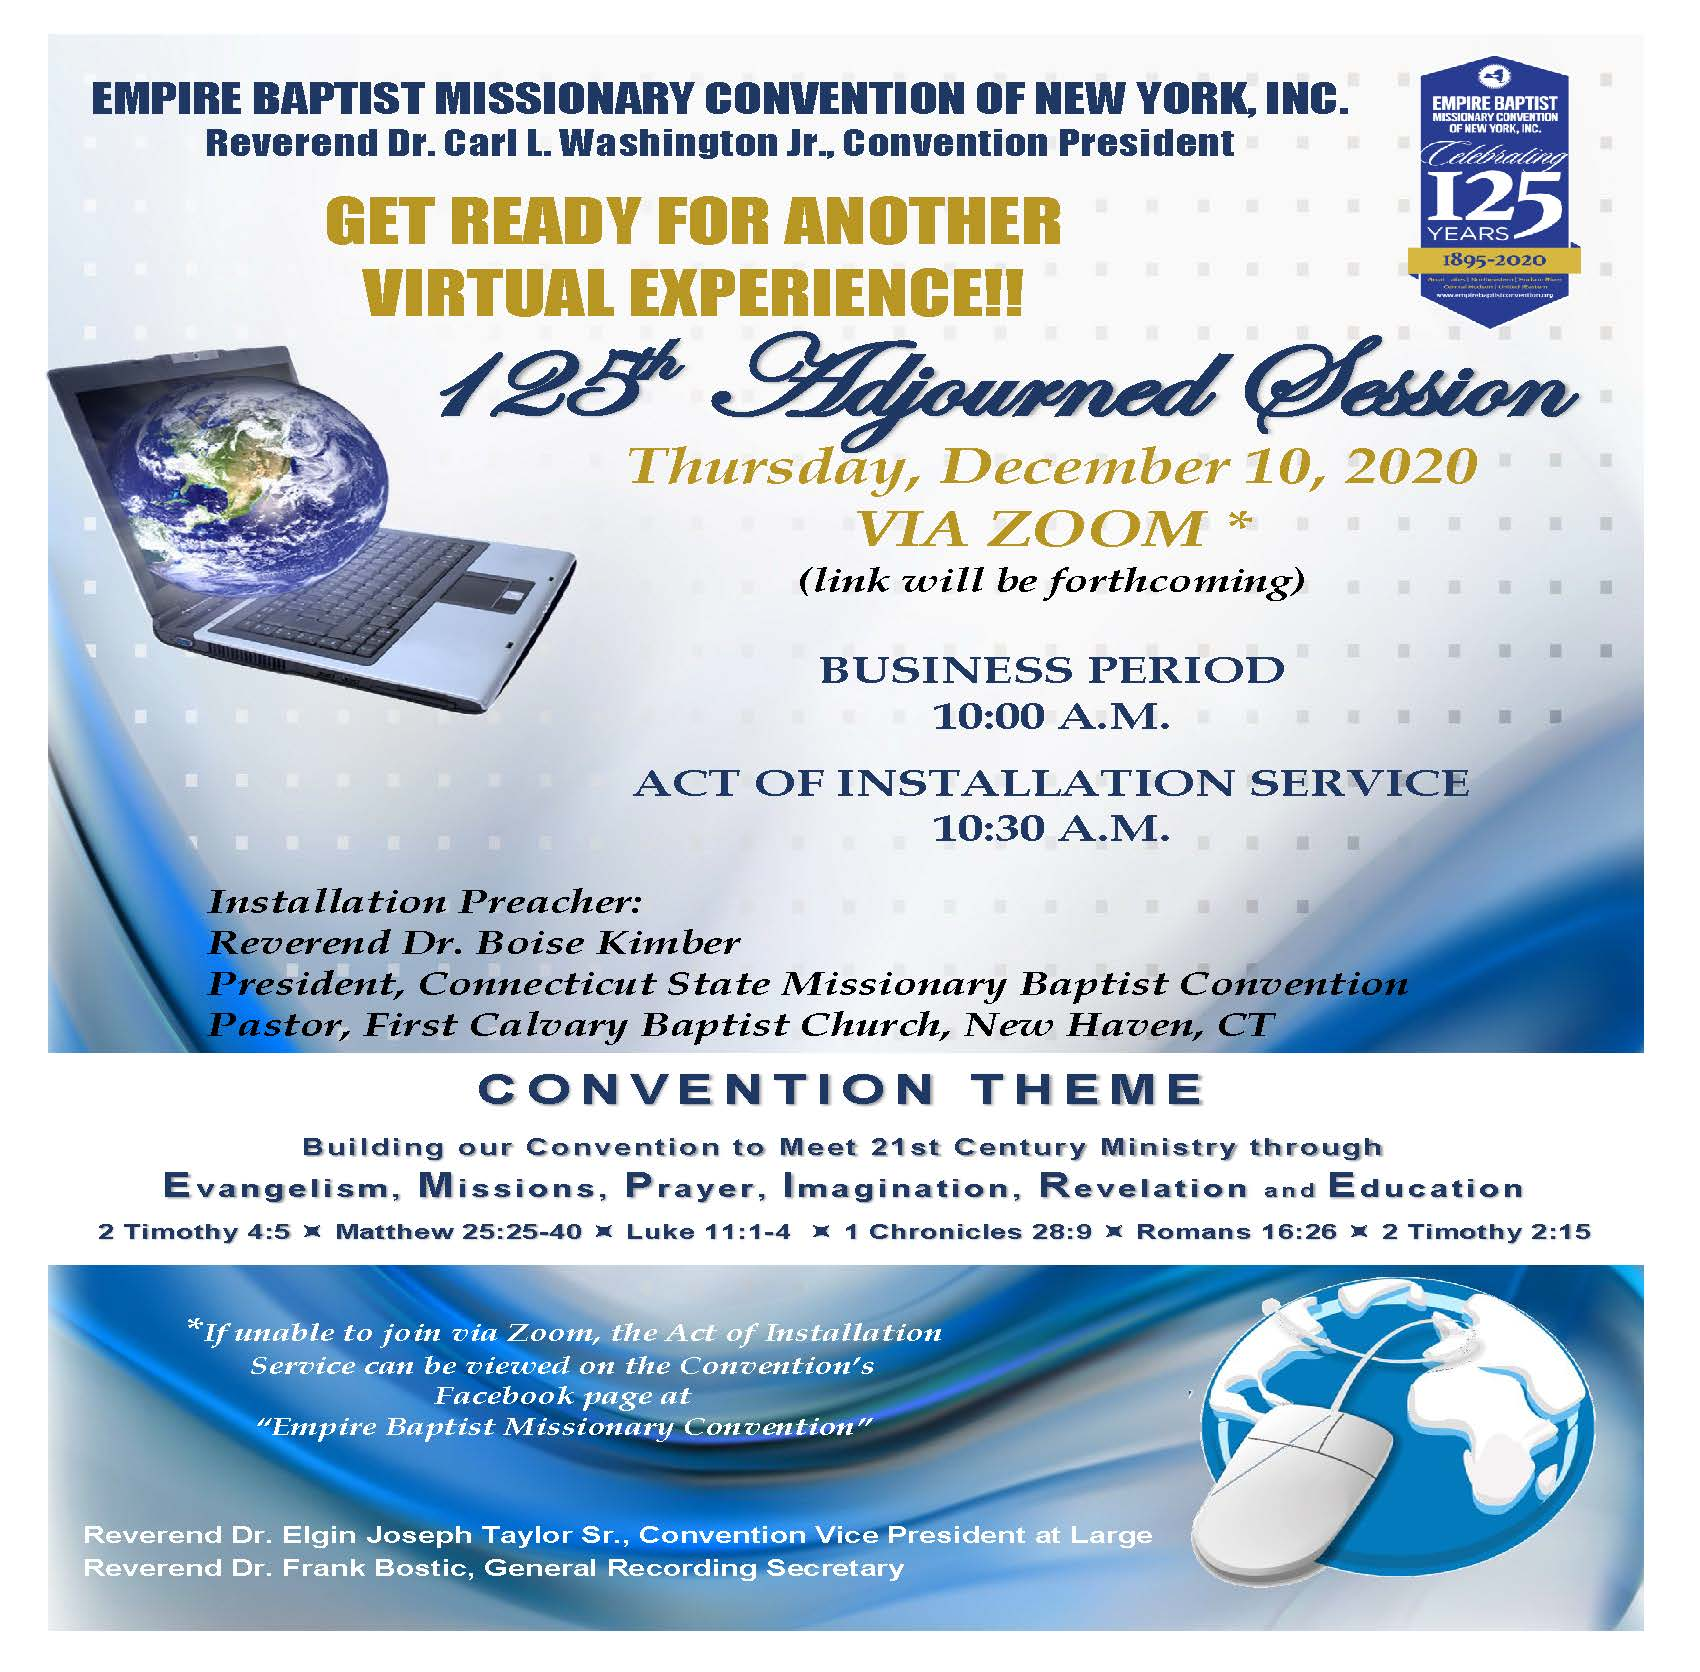 EBMC 125th Adjourned Session - A Virtual Session flyerREV